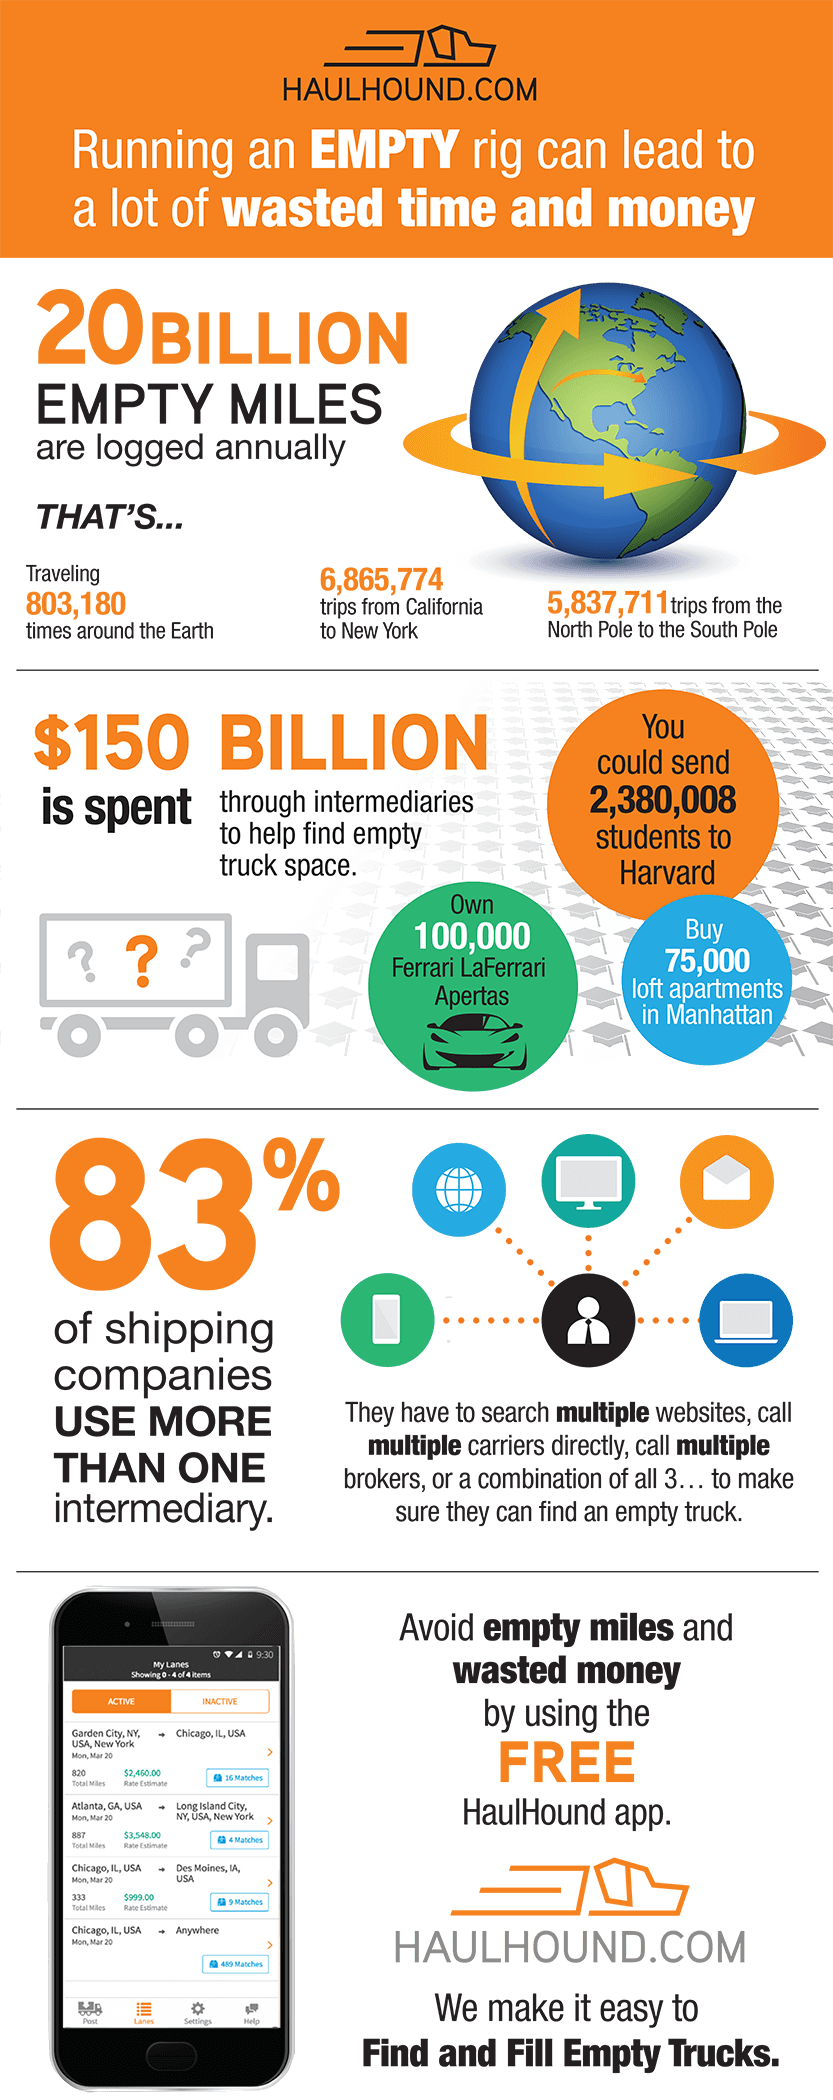 Reducing empty miles is key to making the trucking industry more environmentally friendly.